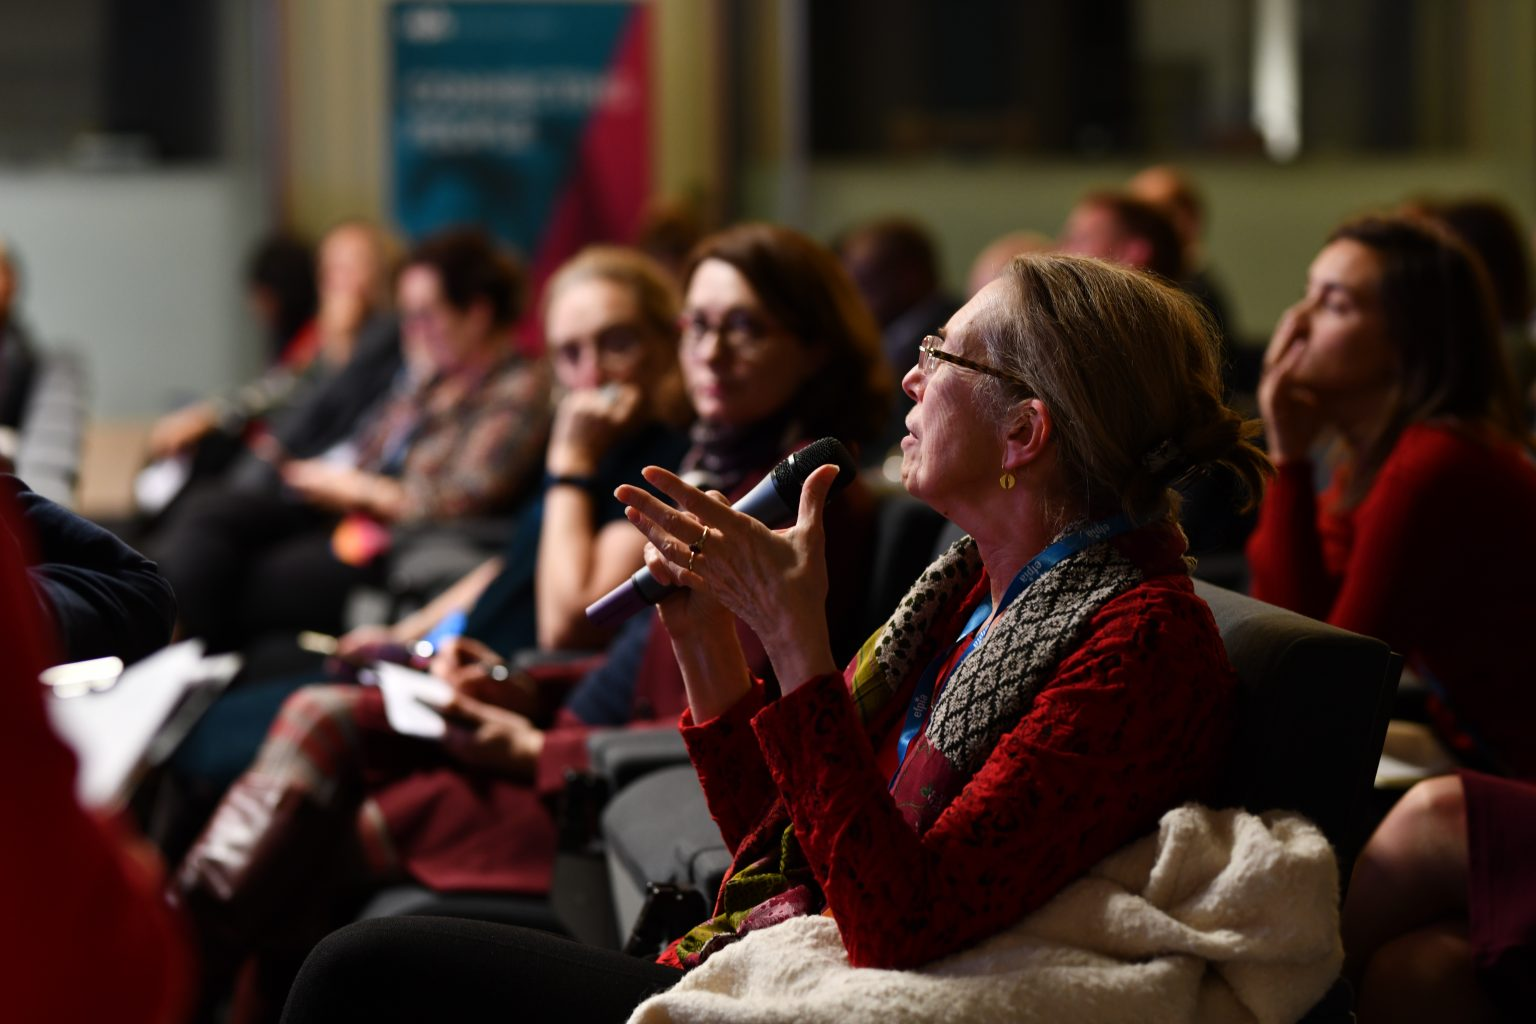 2changes avec le public, Connected Healthcare Debat, EFPIA, 06/11/2019, Aurore delsoir Photographe corporate